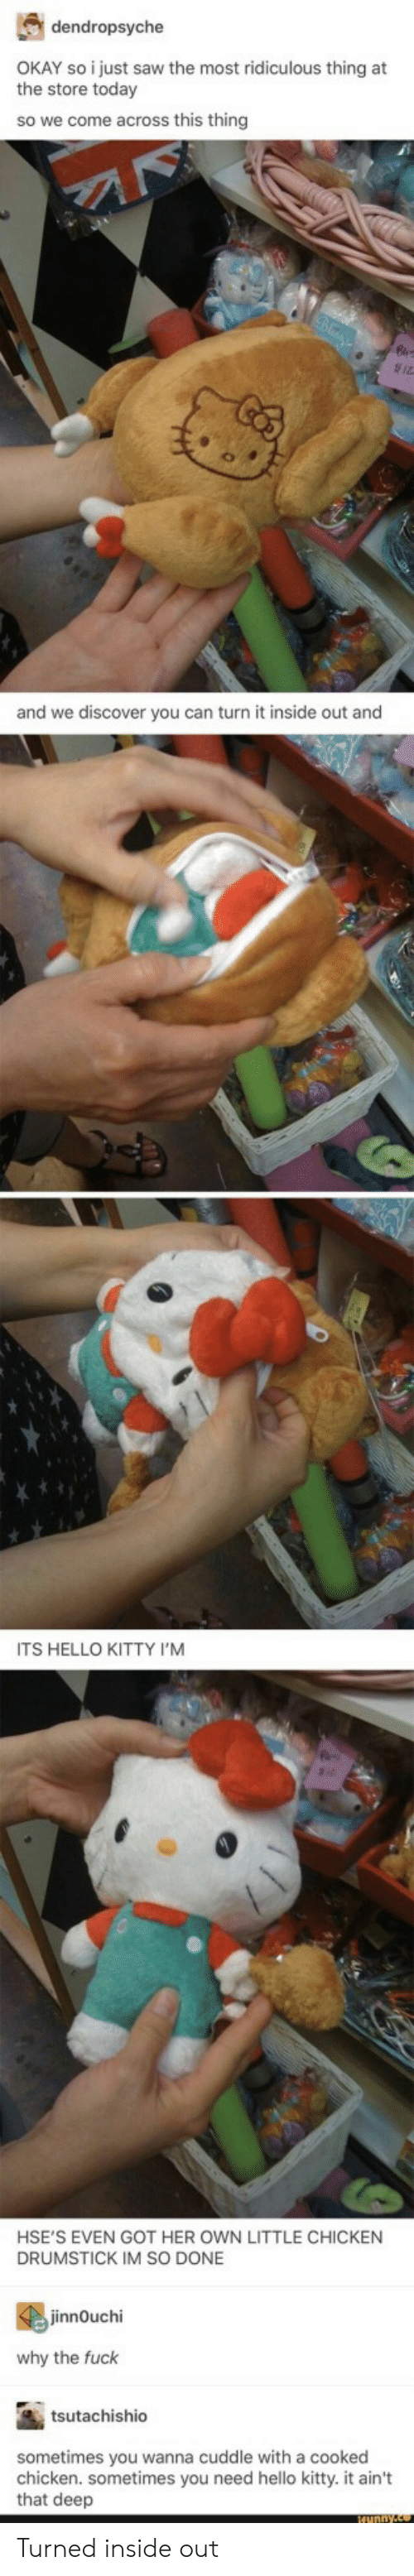 Im So Done: dendropsyche  the store torstysaw the most ridiculous thing at  the store today  so we come across this thing  and we discover you can turn it inside out and  ITS HELLO KITTY I'M  HSE'S EVEN GOT HER OWN LITTLE CHICKEN  DRUMSTICK IM SO DONE  innOuchi  why the fuck  tsutachishio  sometimes you wanna cuddle with a cooked  chicken. sometimes you need hello kitty. it ain't  that deep Turned inside out